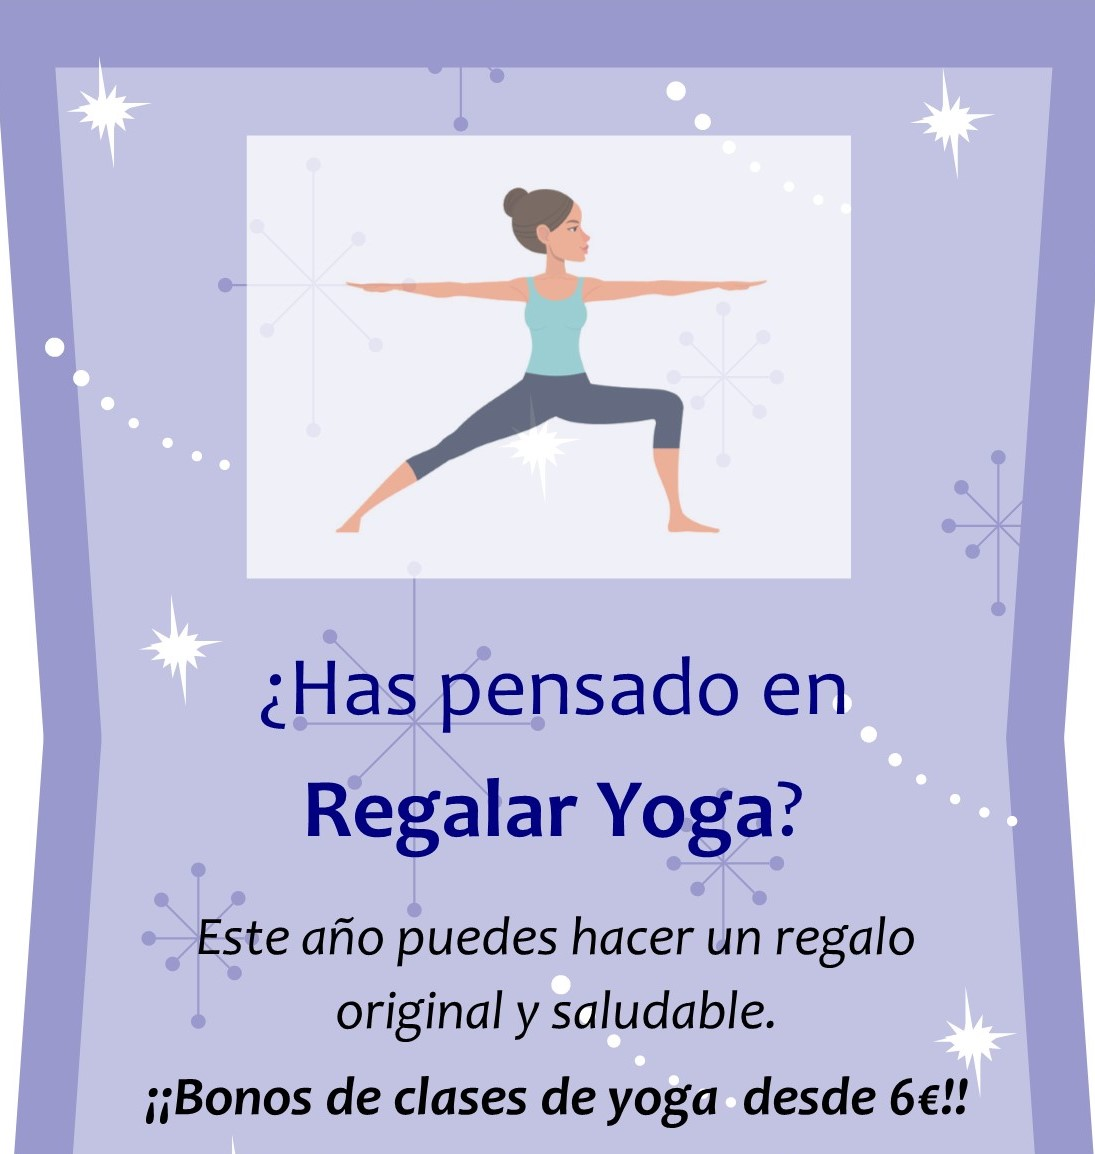 Regala Yoga